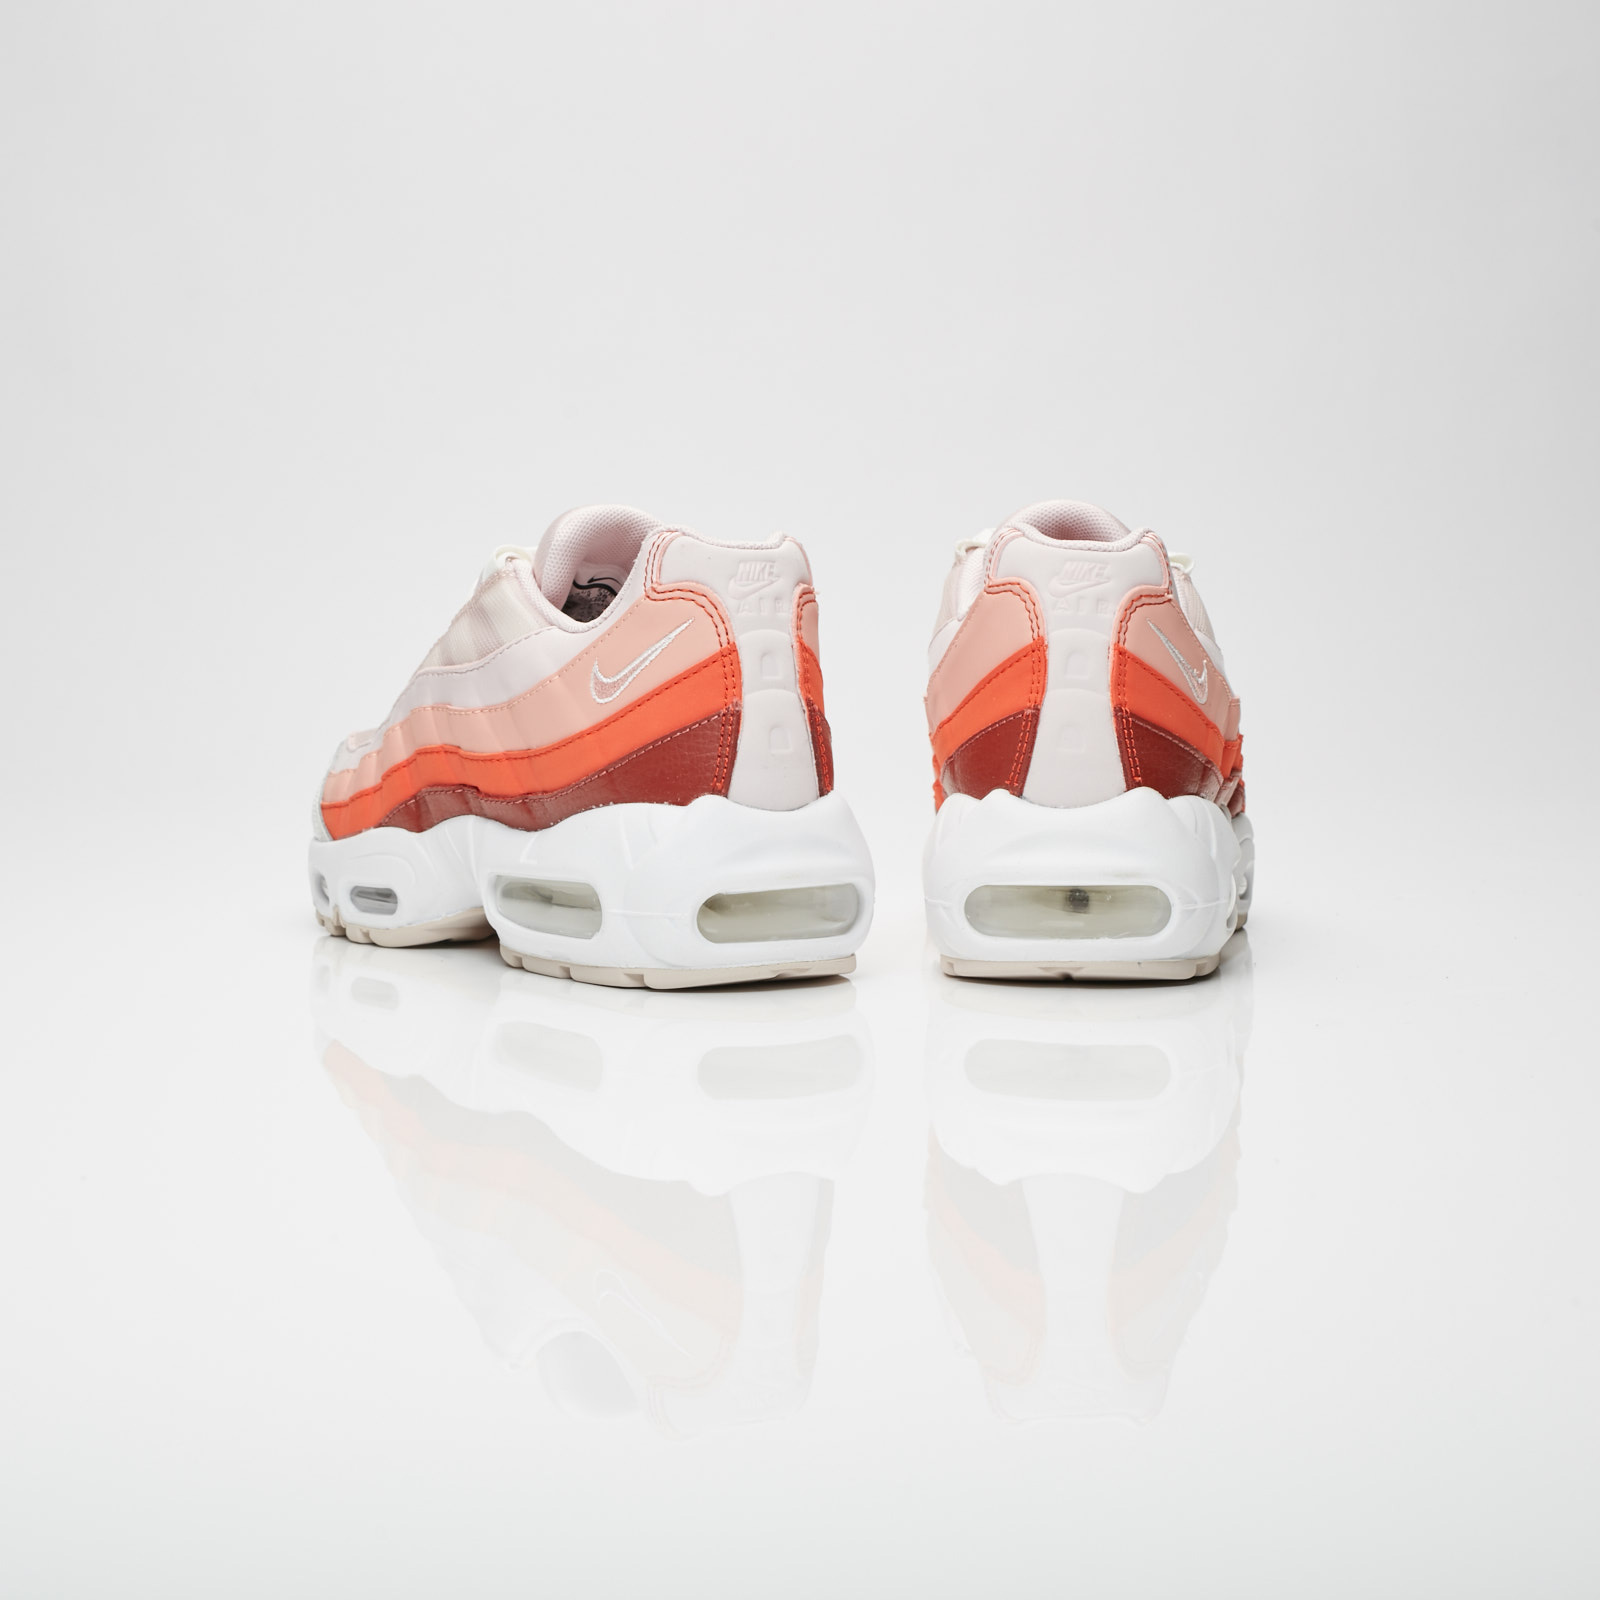 newest collection 6d927 14ab7 Nike Wmns Air Max 95 - 307960-604 - Sneakersnstuff   sneakers   streetwear  online since 1999